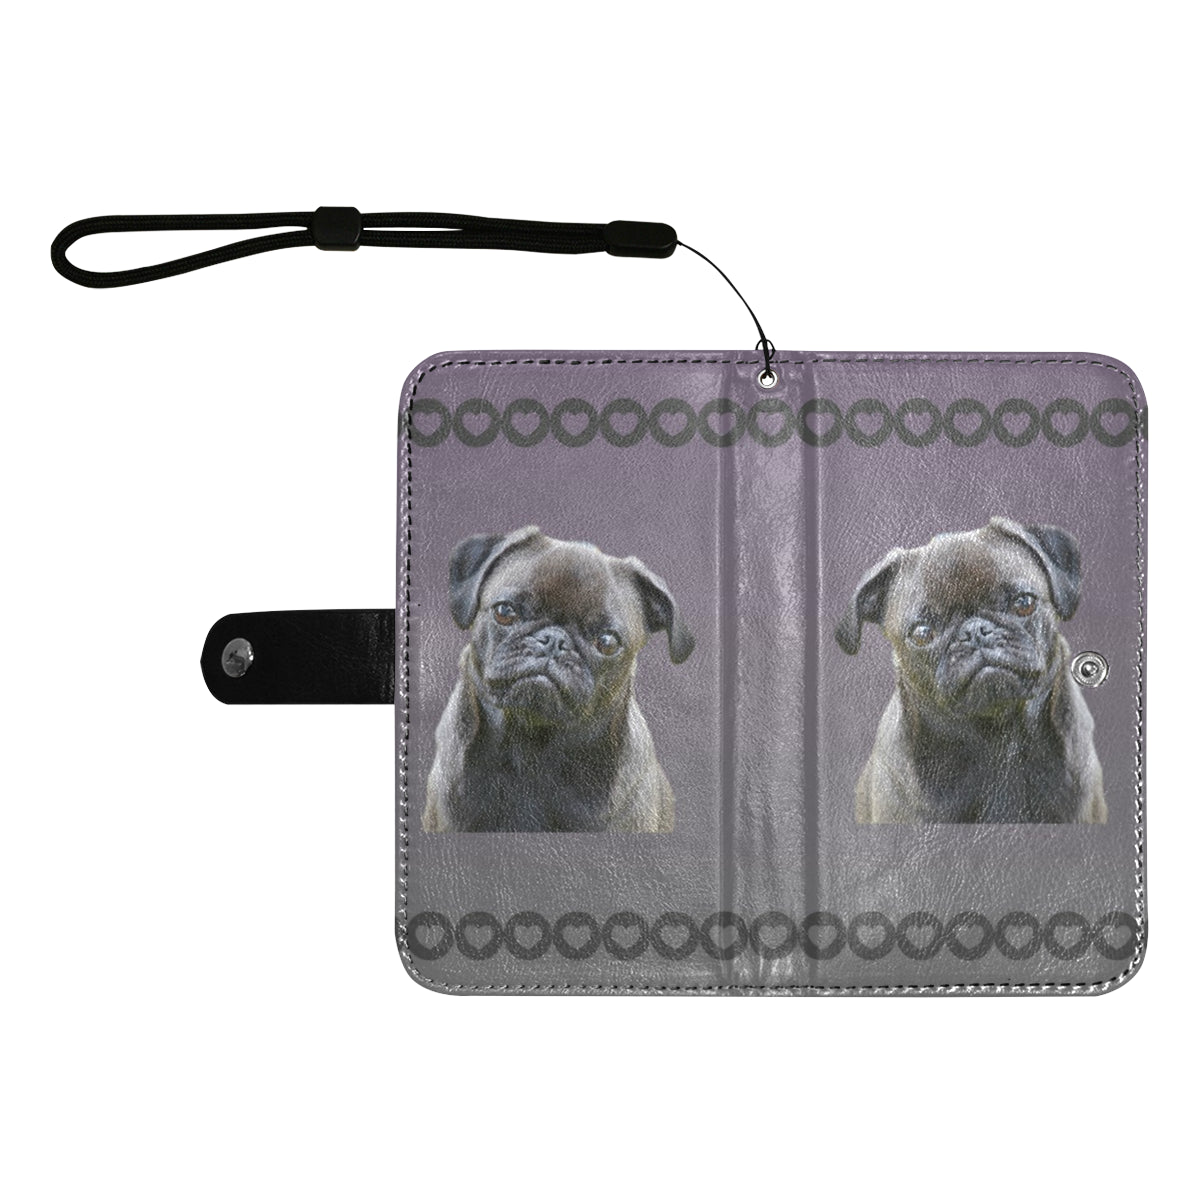 Pug Phone Case Wallet - Black Pug 55